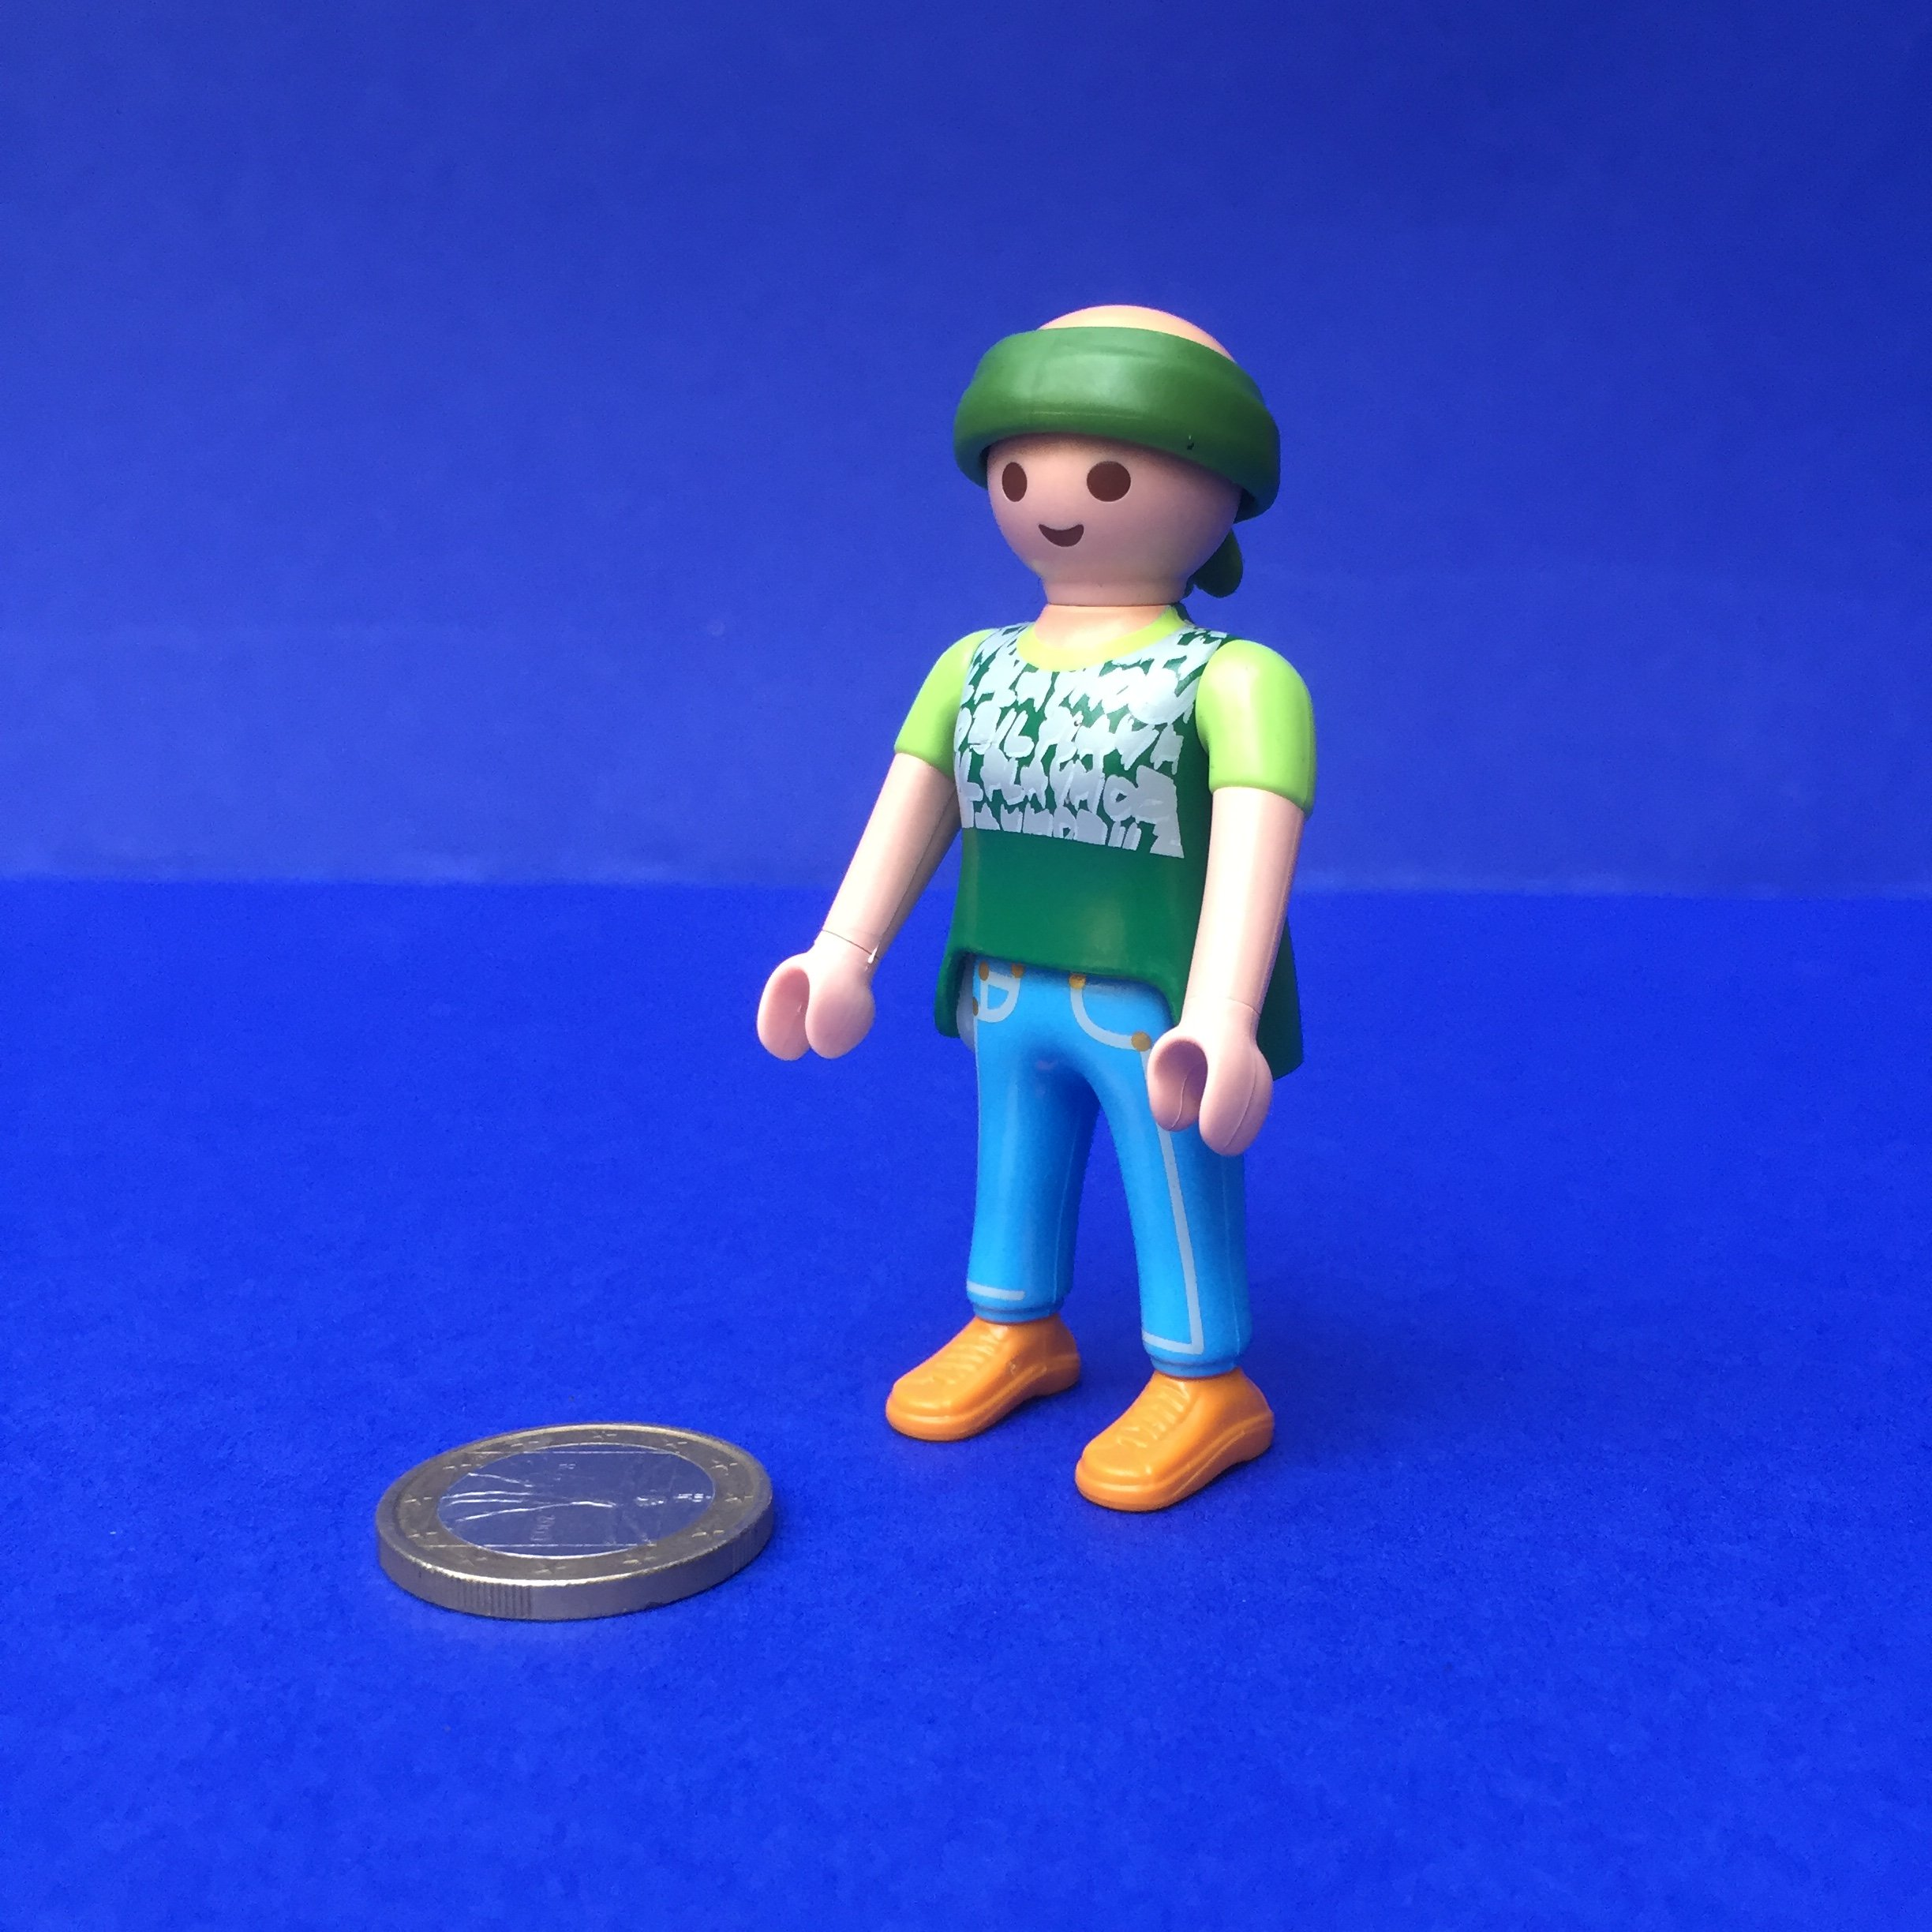 Playmobil-haarband